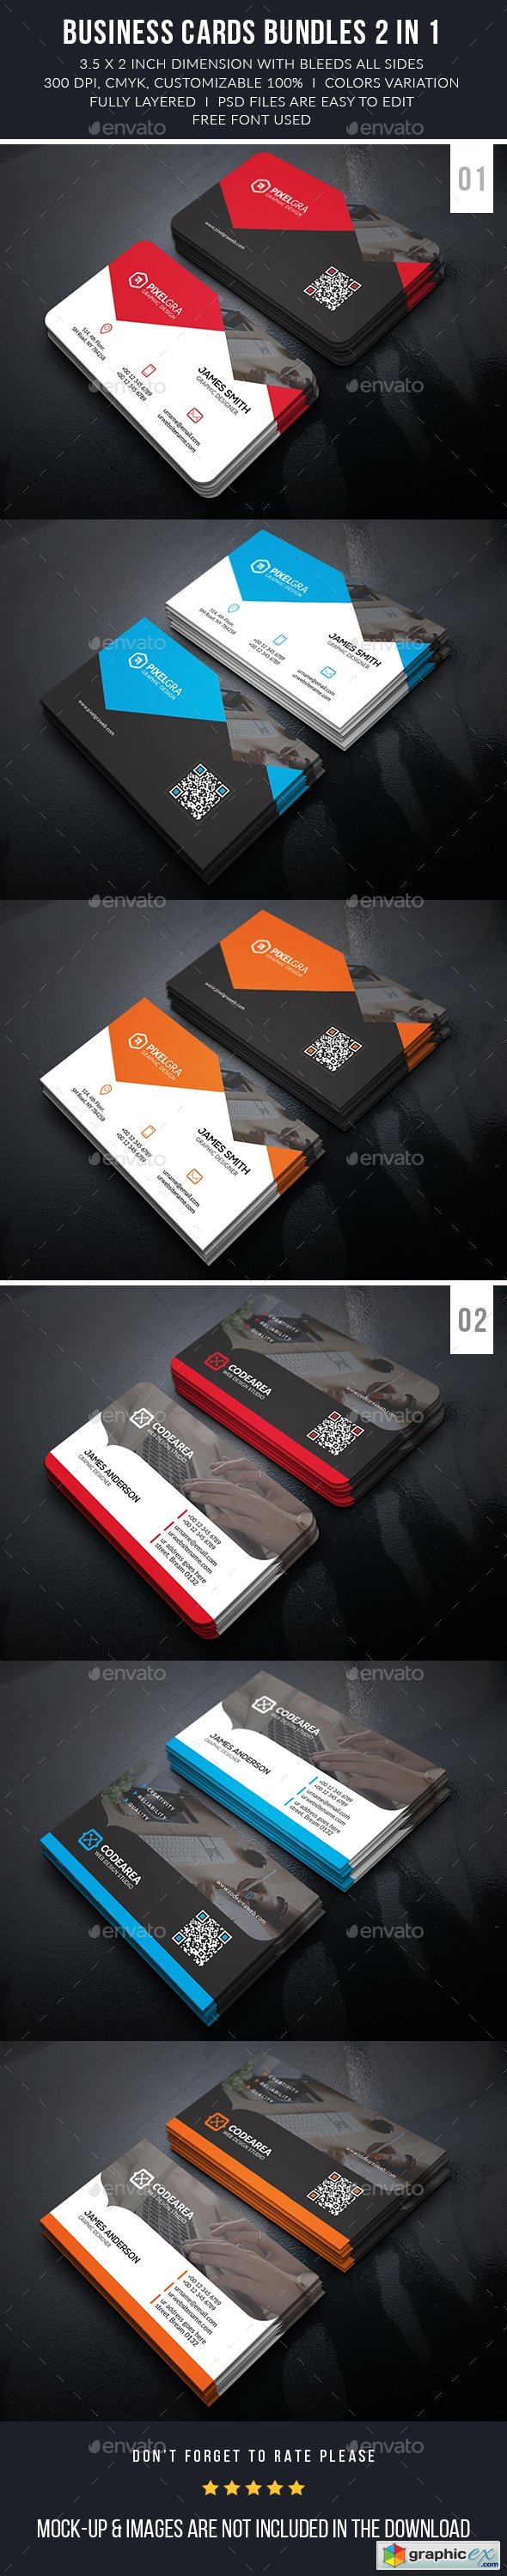 Professional Business Cards Bundle